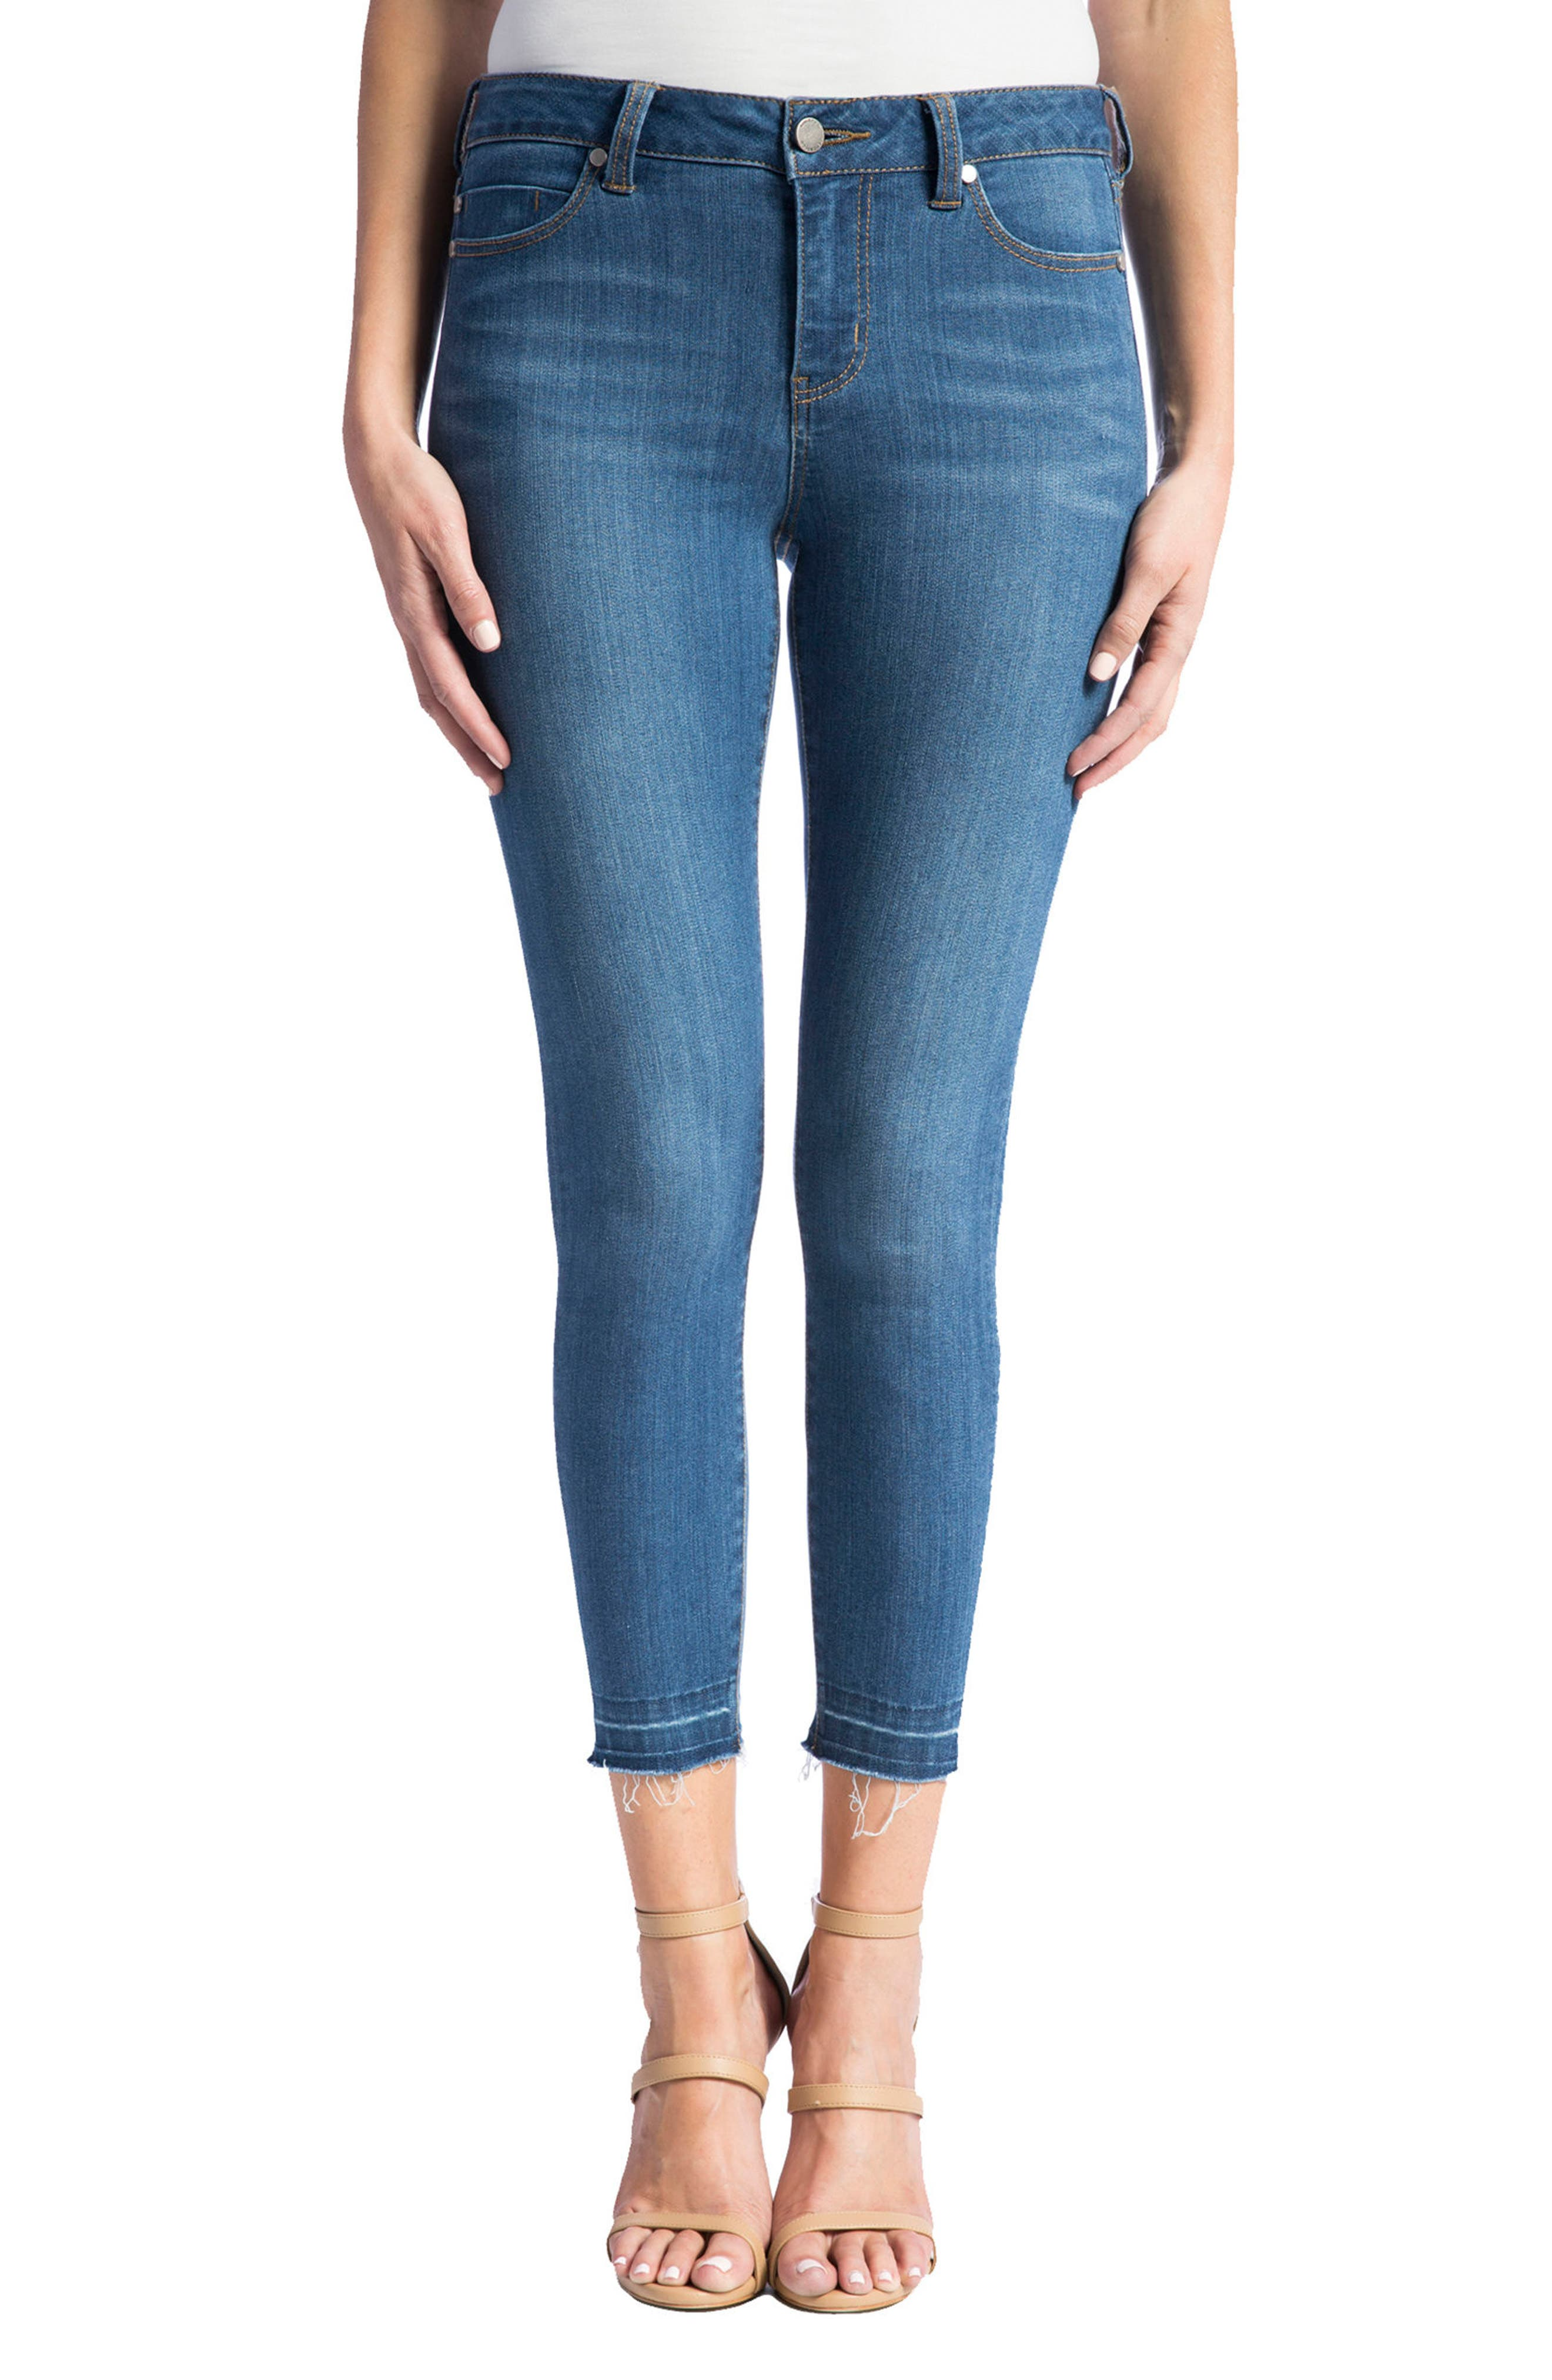 Avery High Rise Release Hem Stretch Crop Skinny Jeans,                             Main thumbnail 1, color,                             401